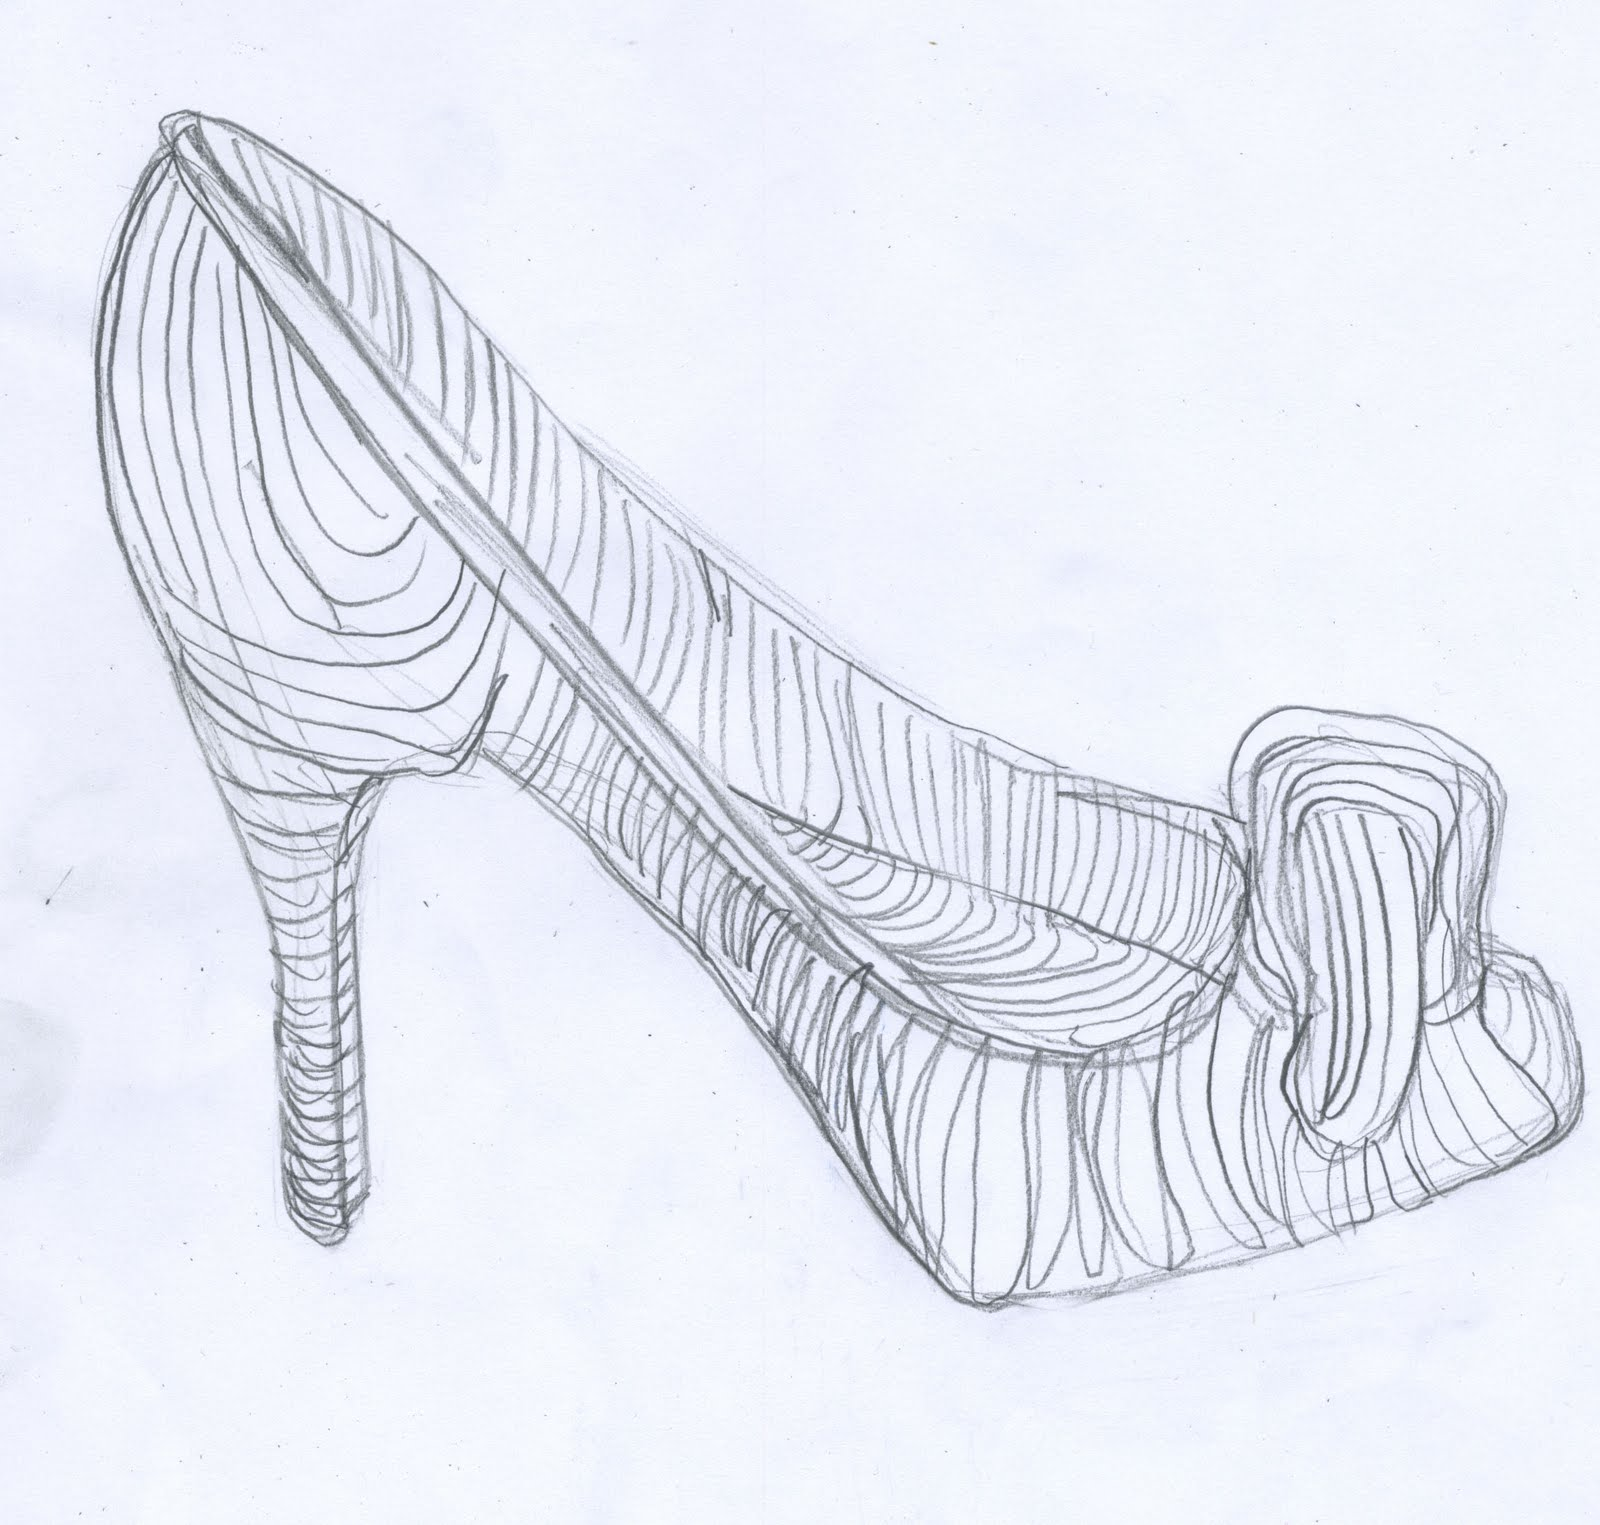 Contour Line Drawing Of Shoes : Design thinking and making post my favorite fancy